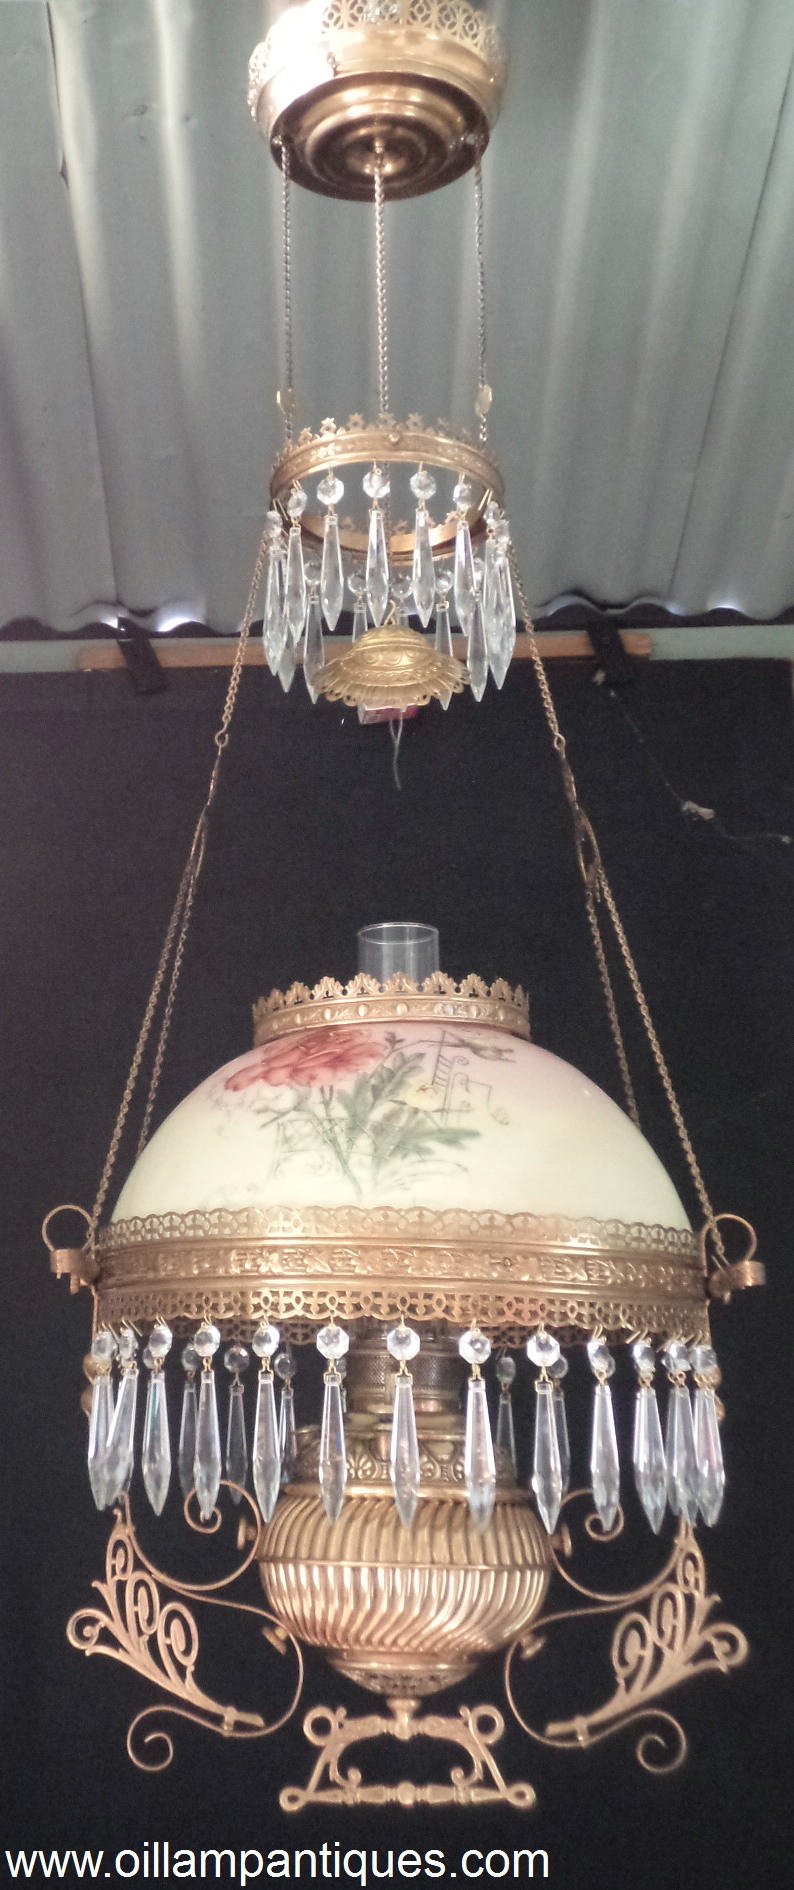 Miller Hanging Lamp For Sale Oil Lamp Antiques